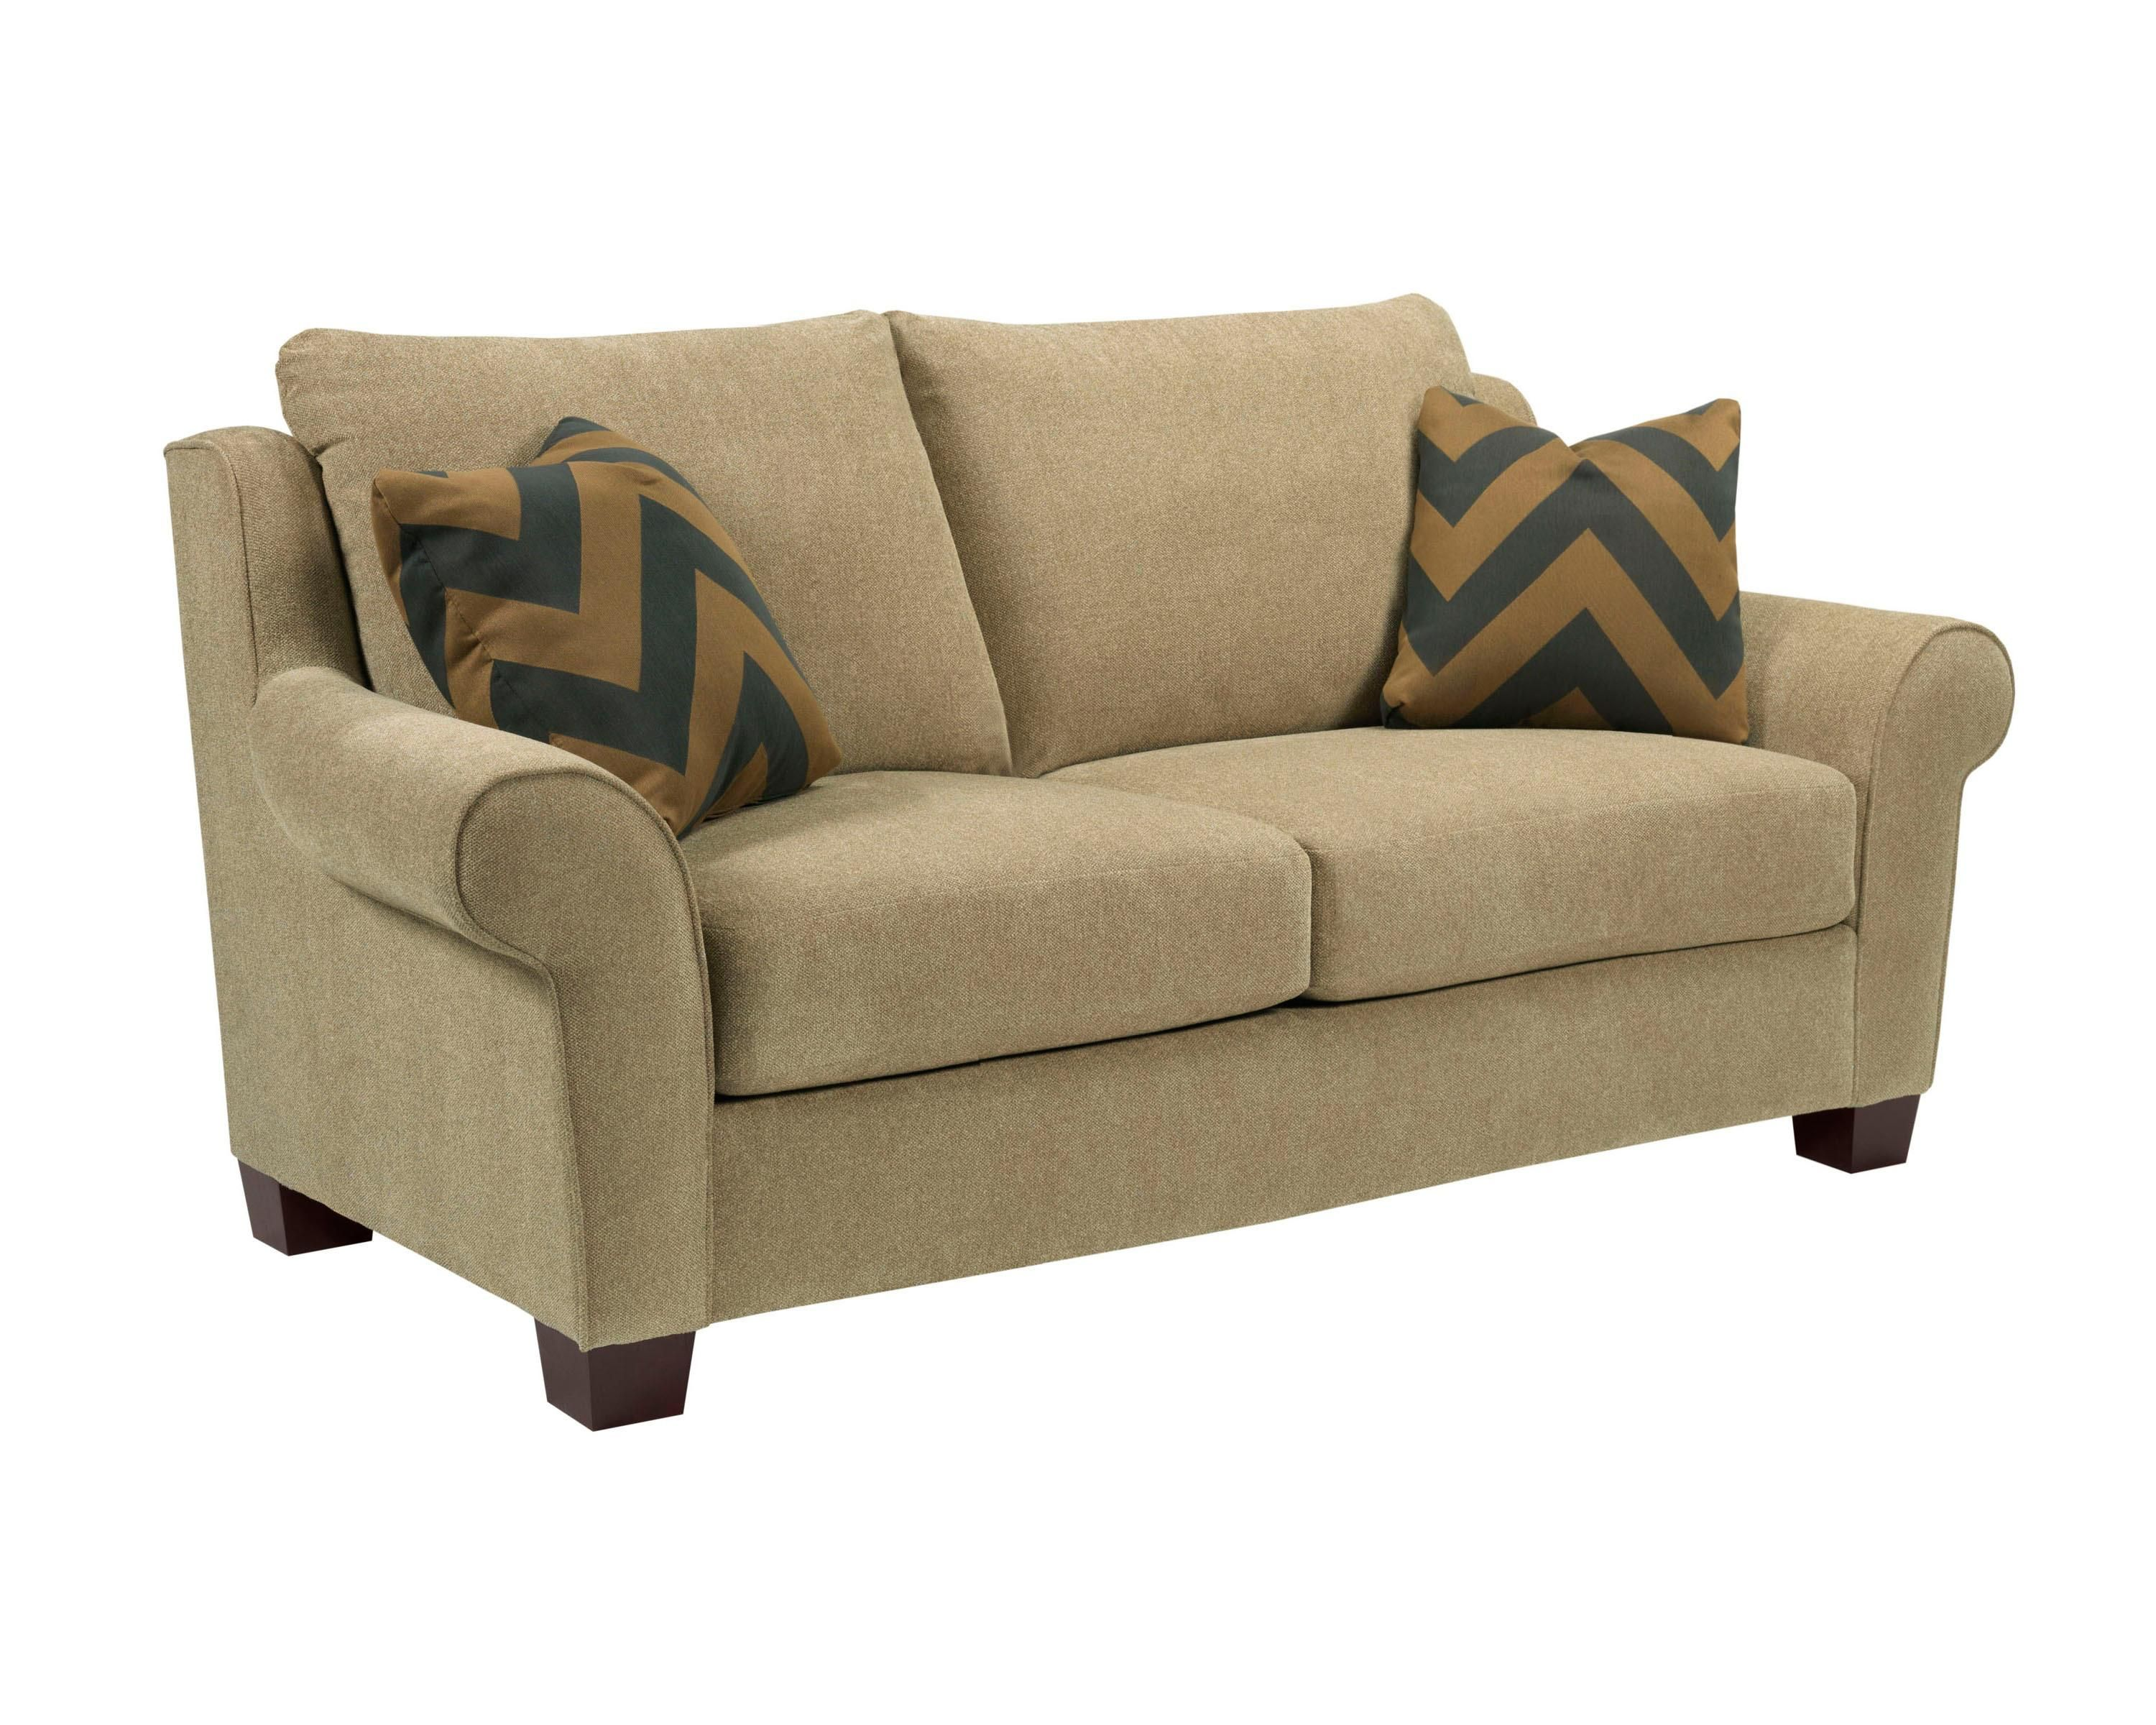 Jersey Transitional Loveseat By Broyhill Furniture